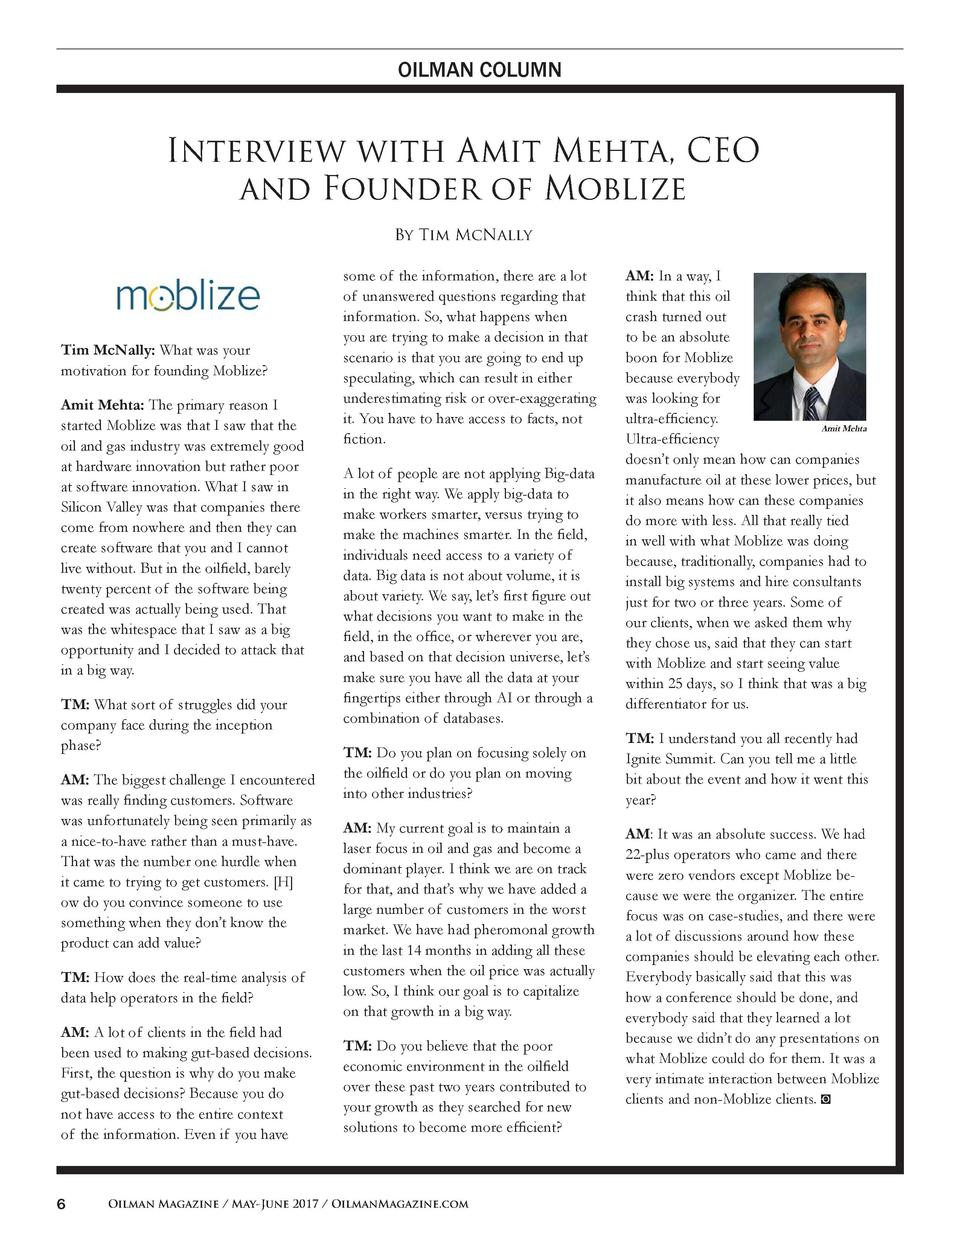 OILMAN COLUMN  Interview with Amit Mehta, CEO and Founder of Moblize By Tim McNally  Tim McNally  What was your motivation...